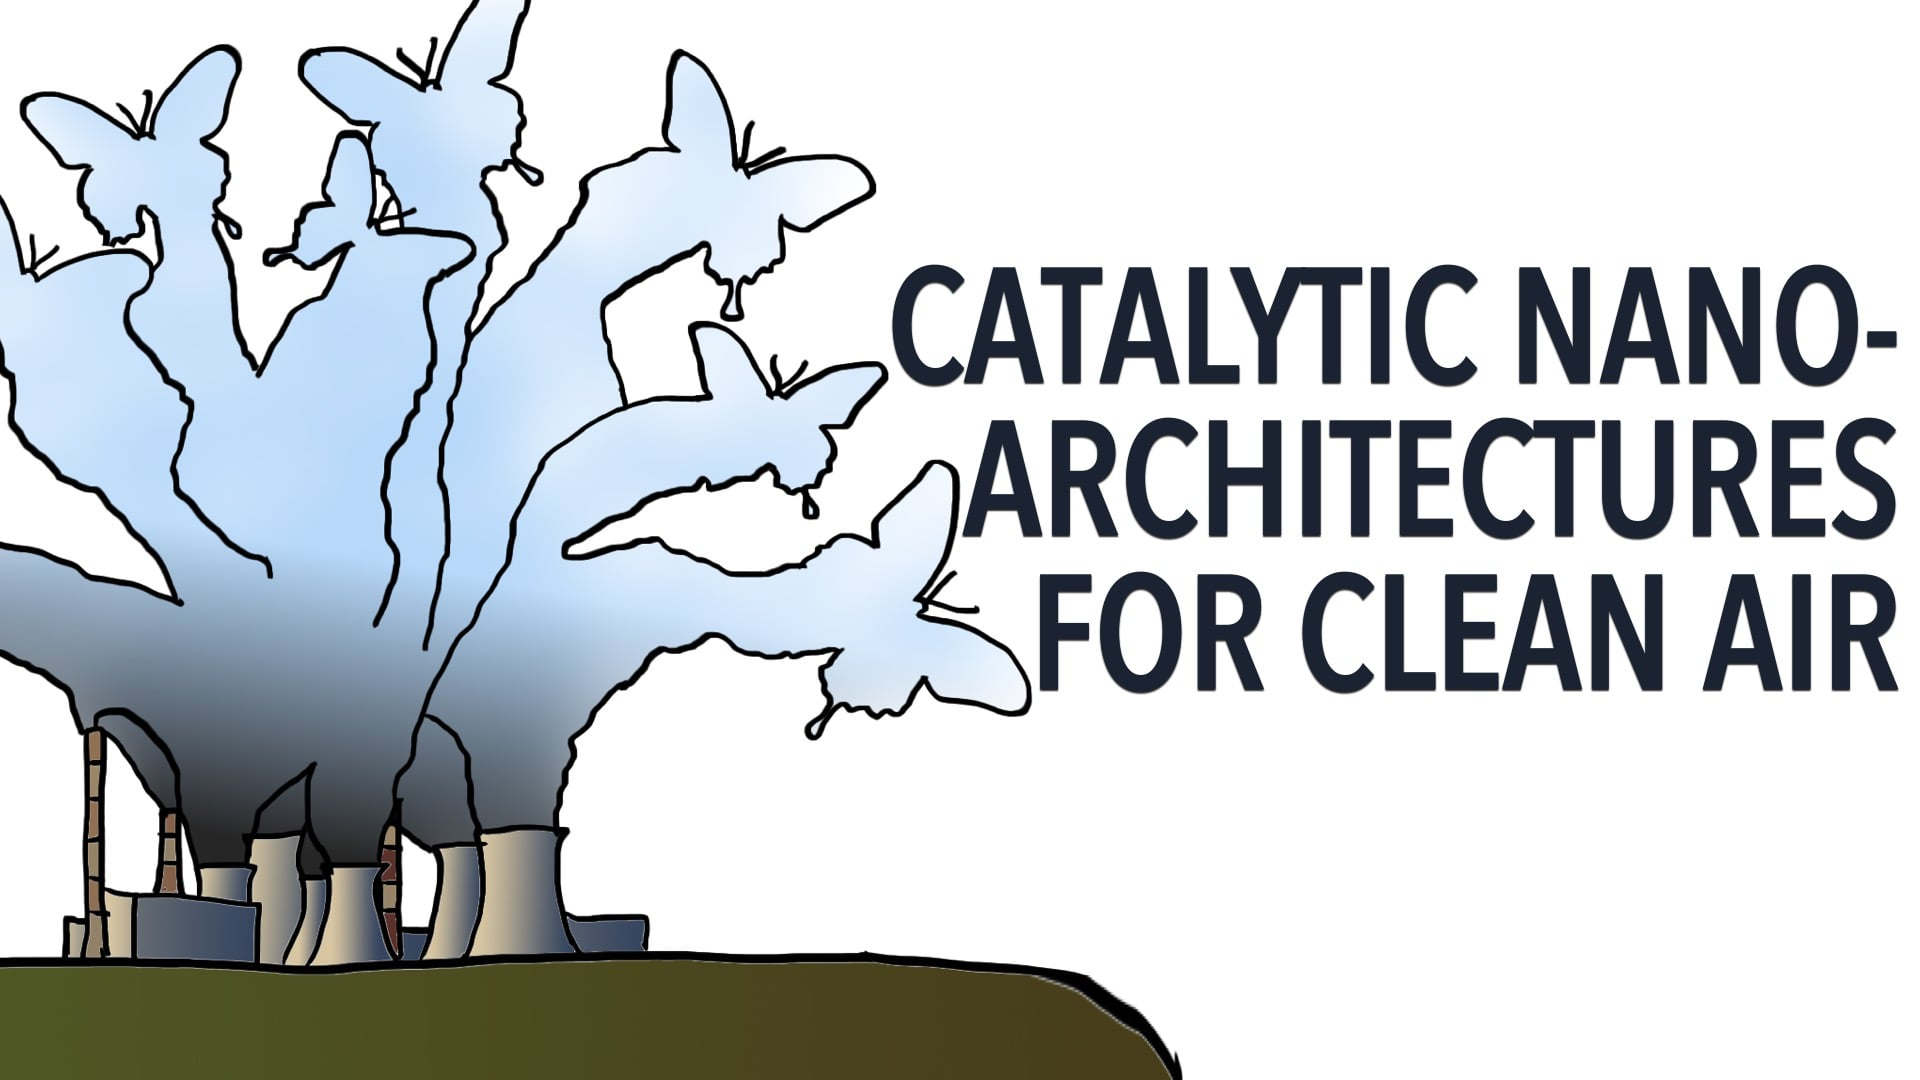 Catalytic Nano-Architectures for Clean Air